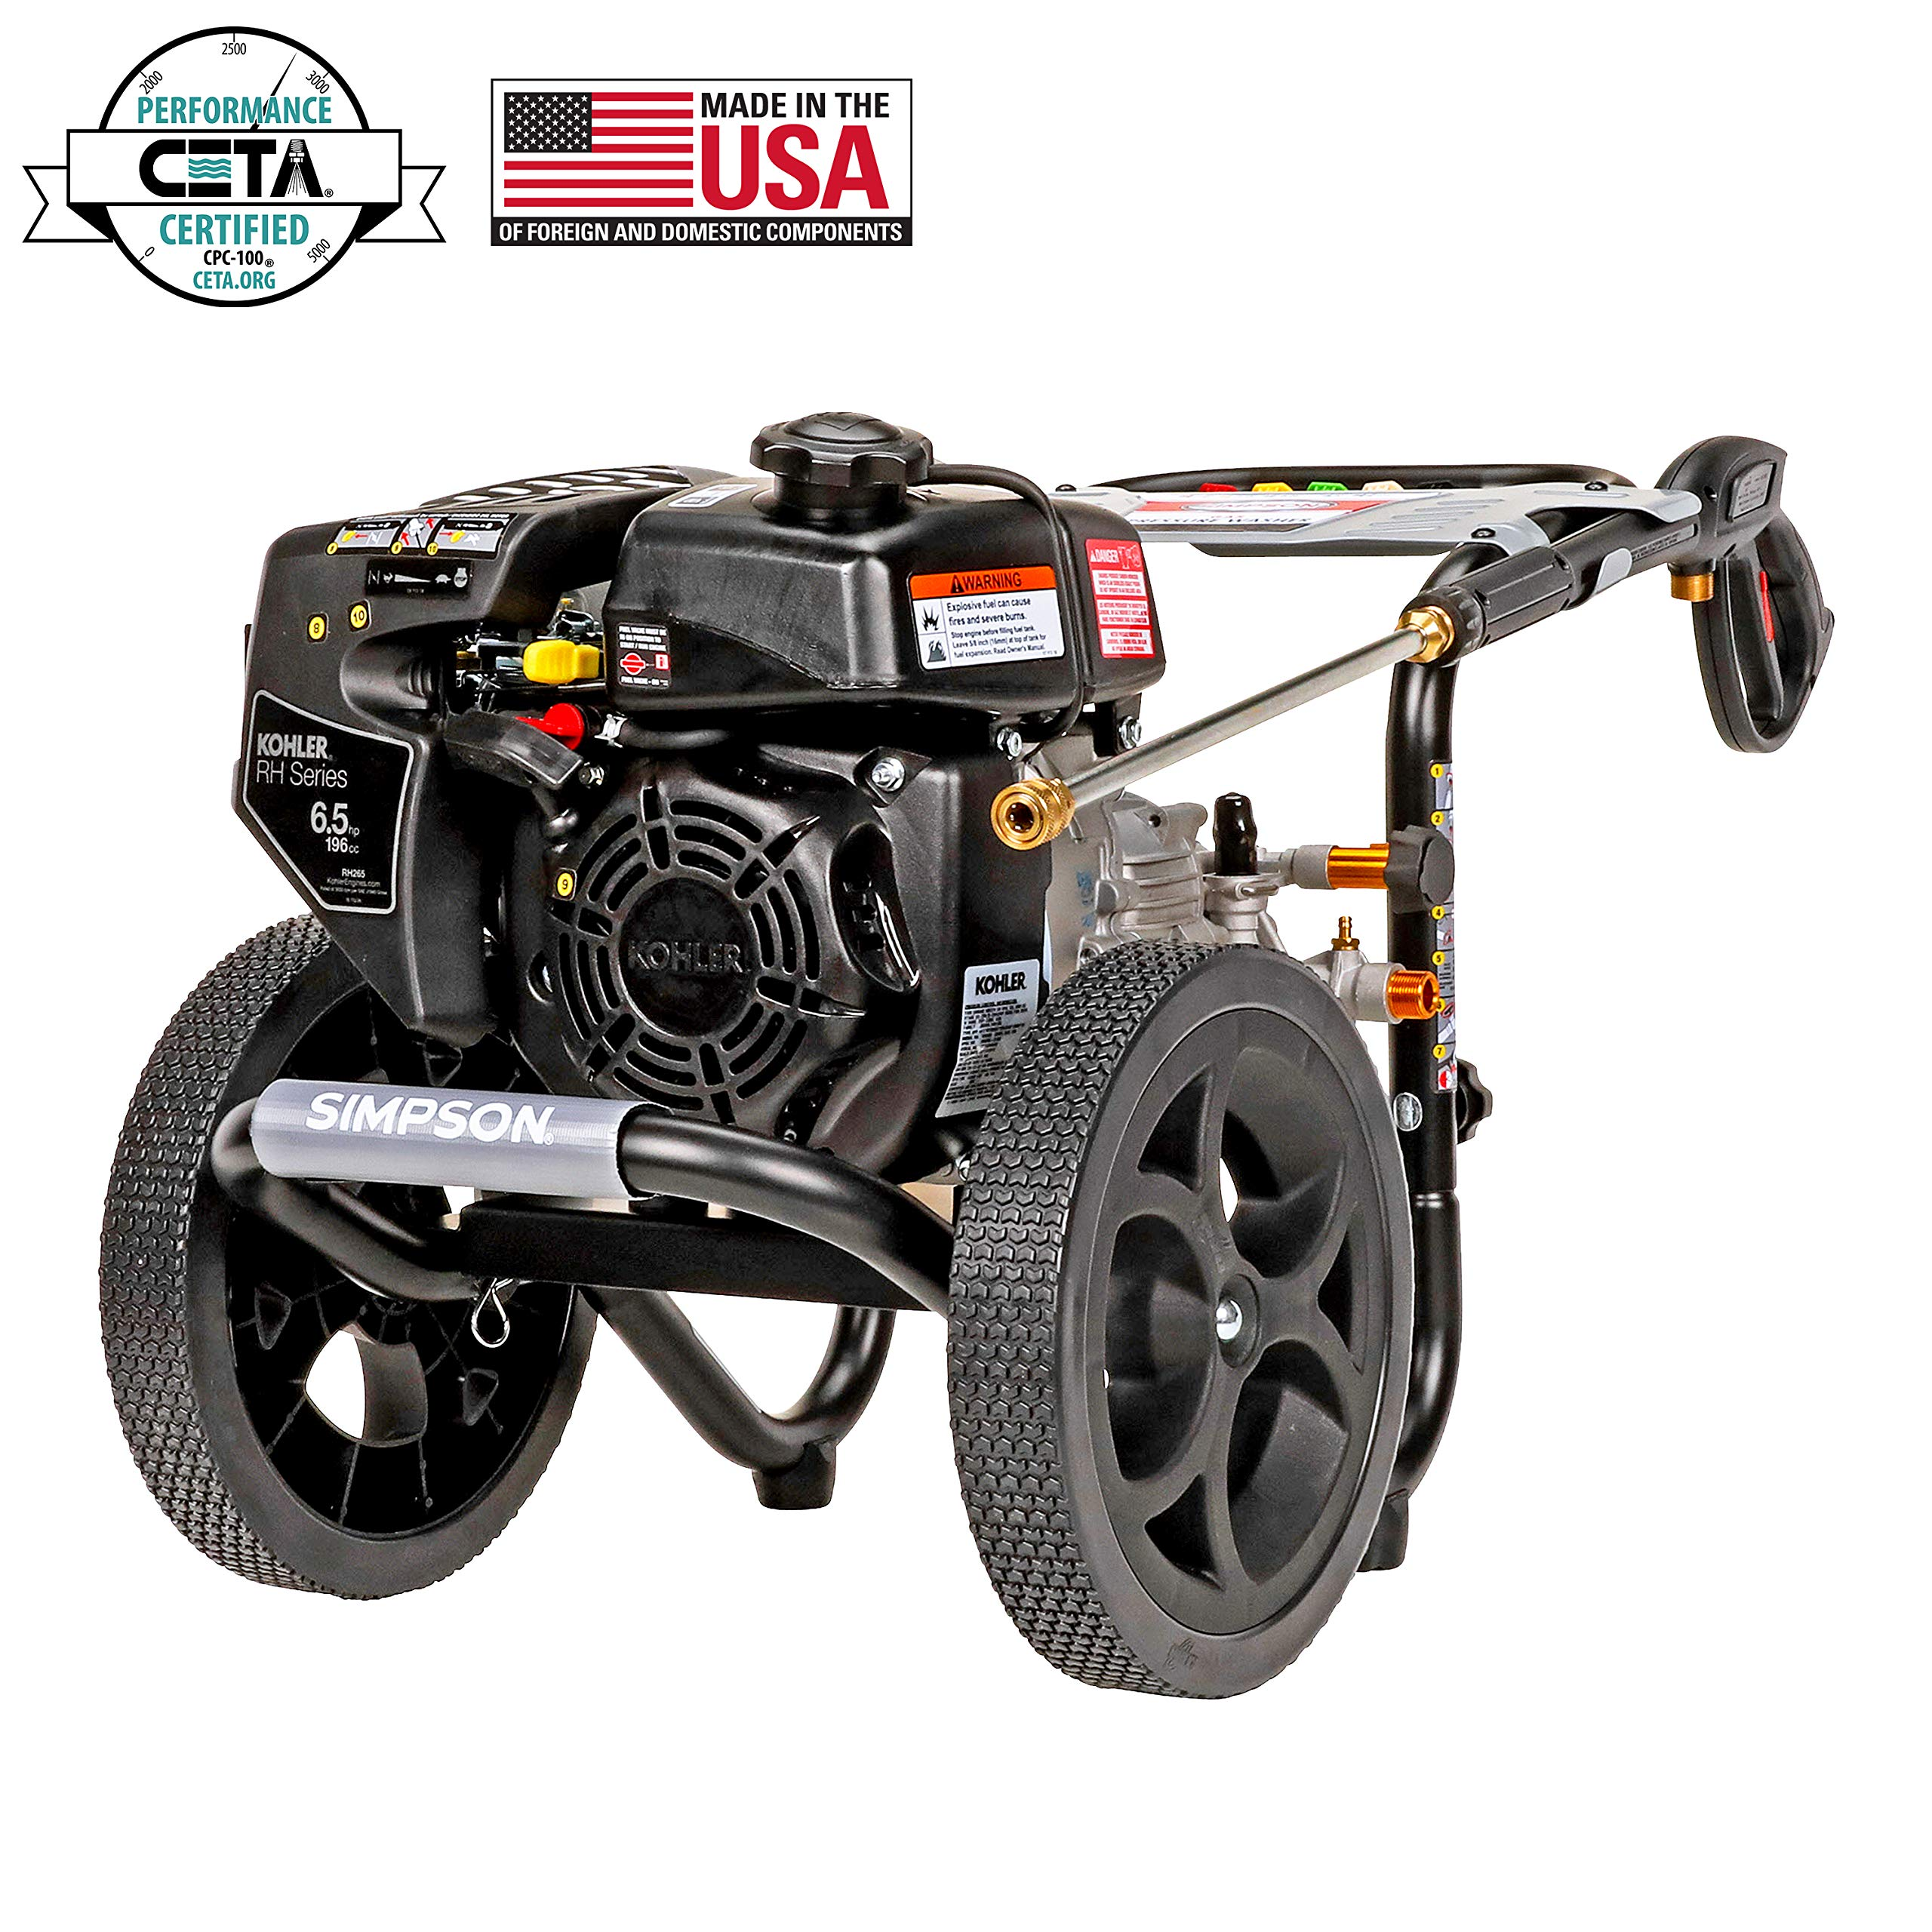 SIMPSON Cleaning MS60763-S MegaShot Gas Pressure Washer Powered by Kohler RH265, 3100 PSI at 2.4 GPM by Simpson Cleaning